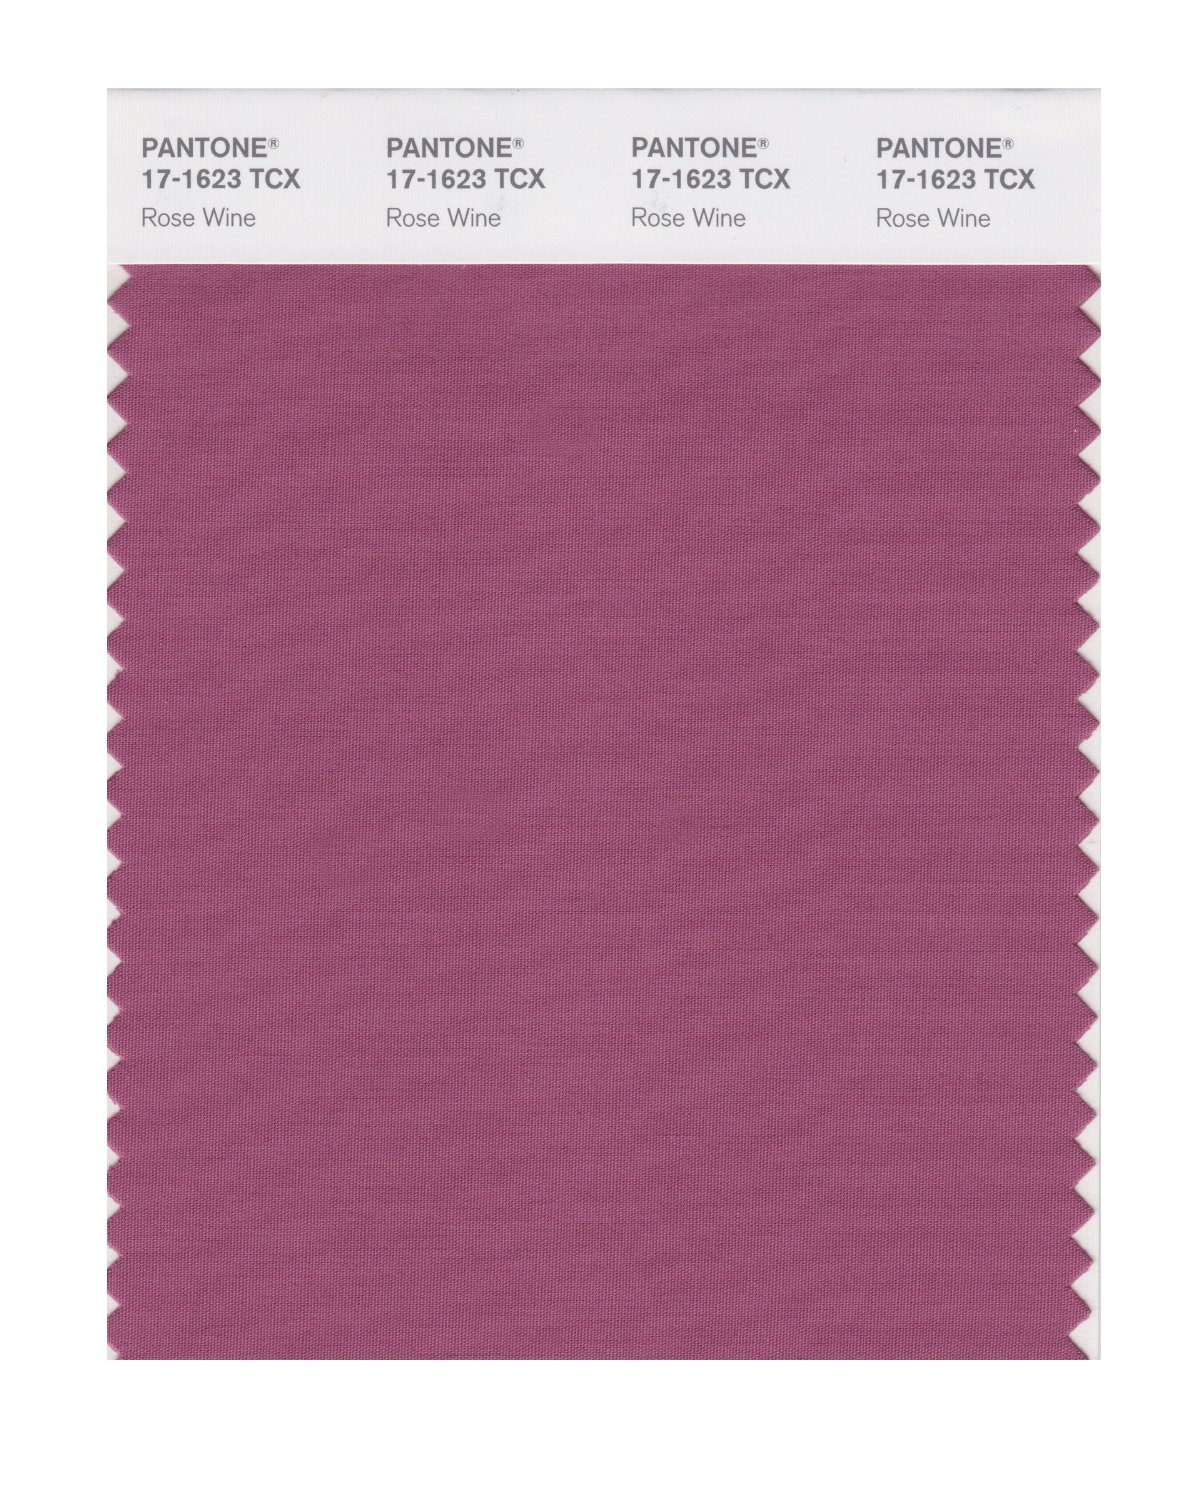 Pantone Smart Swatch 17-1623 Rose Wine